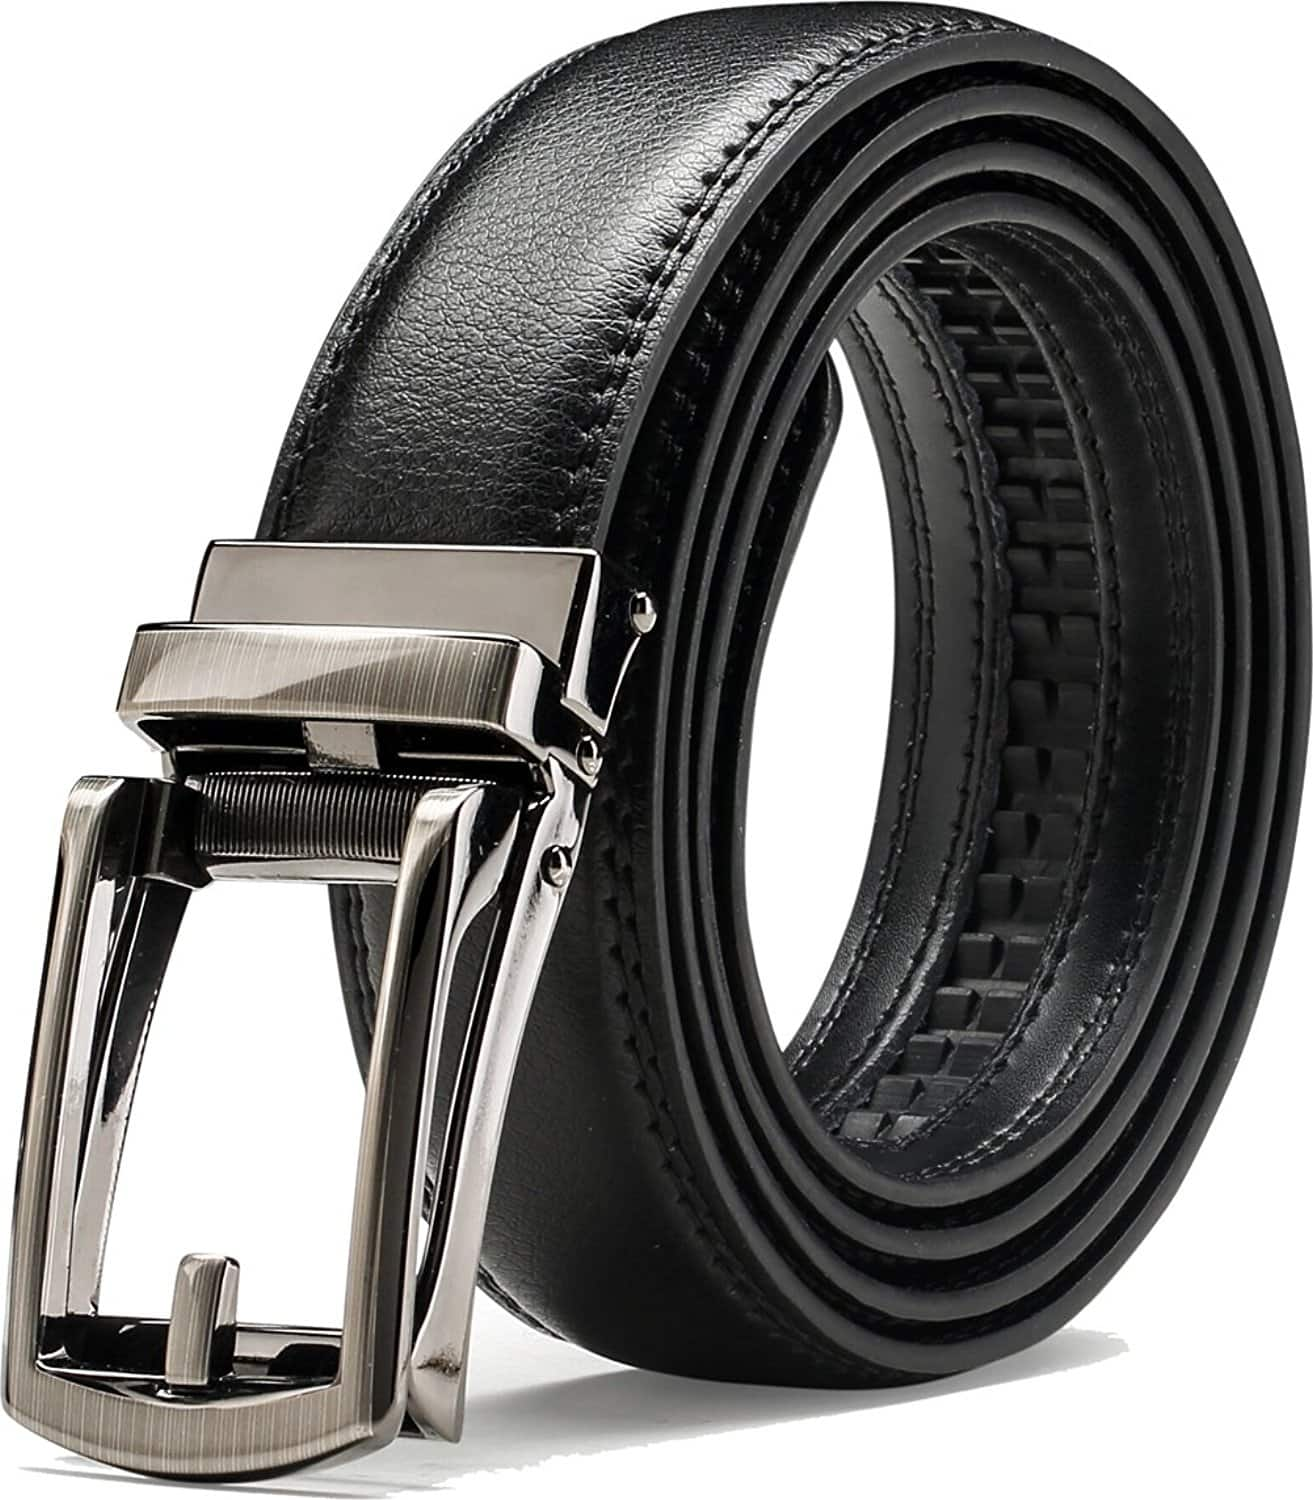 Genuine Leather Belt For Men $8.5 + free shipping